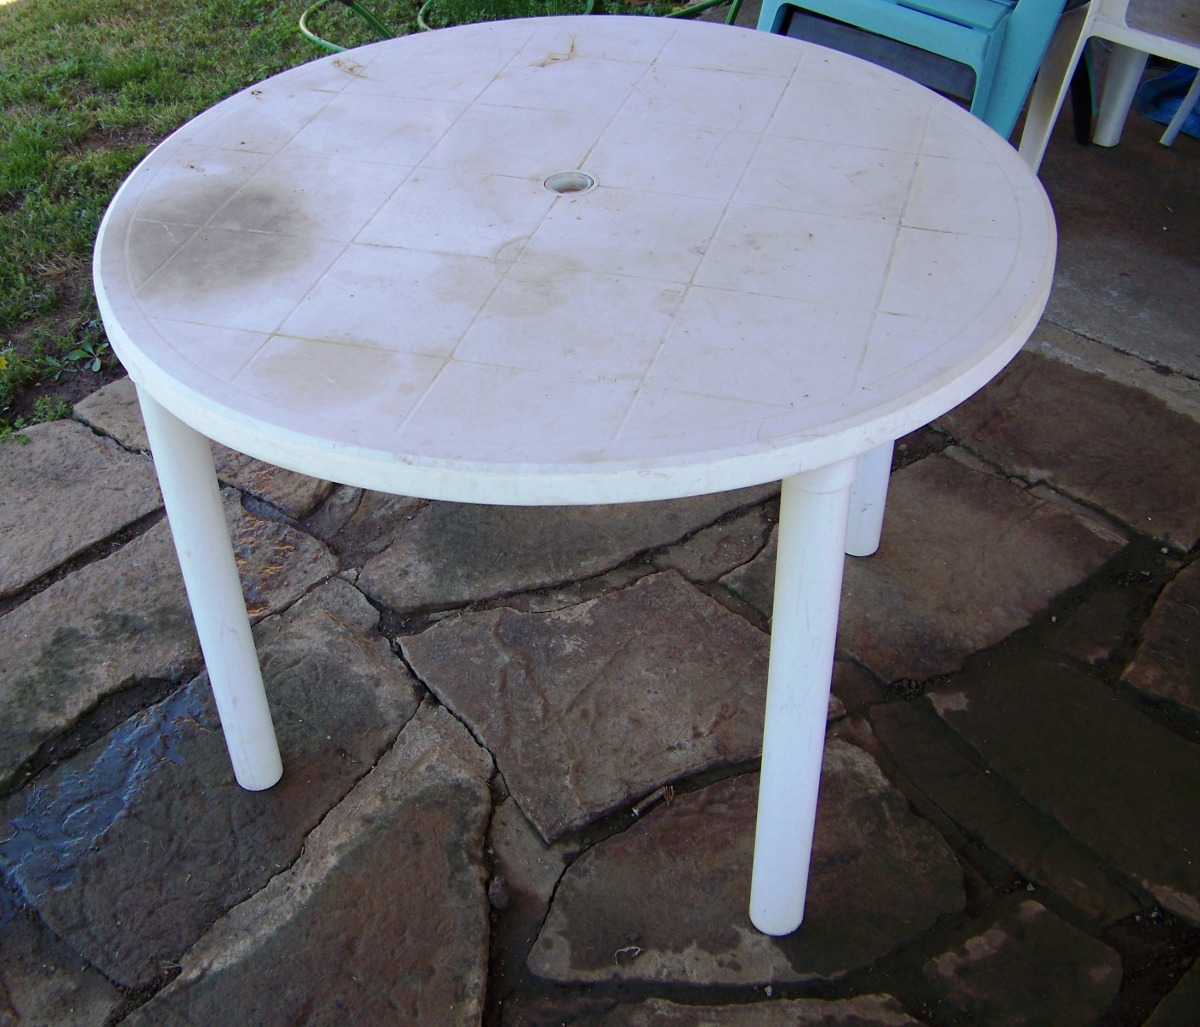 Saturday Project: Refinish A Table